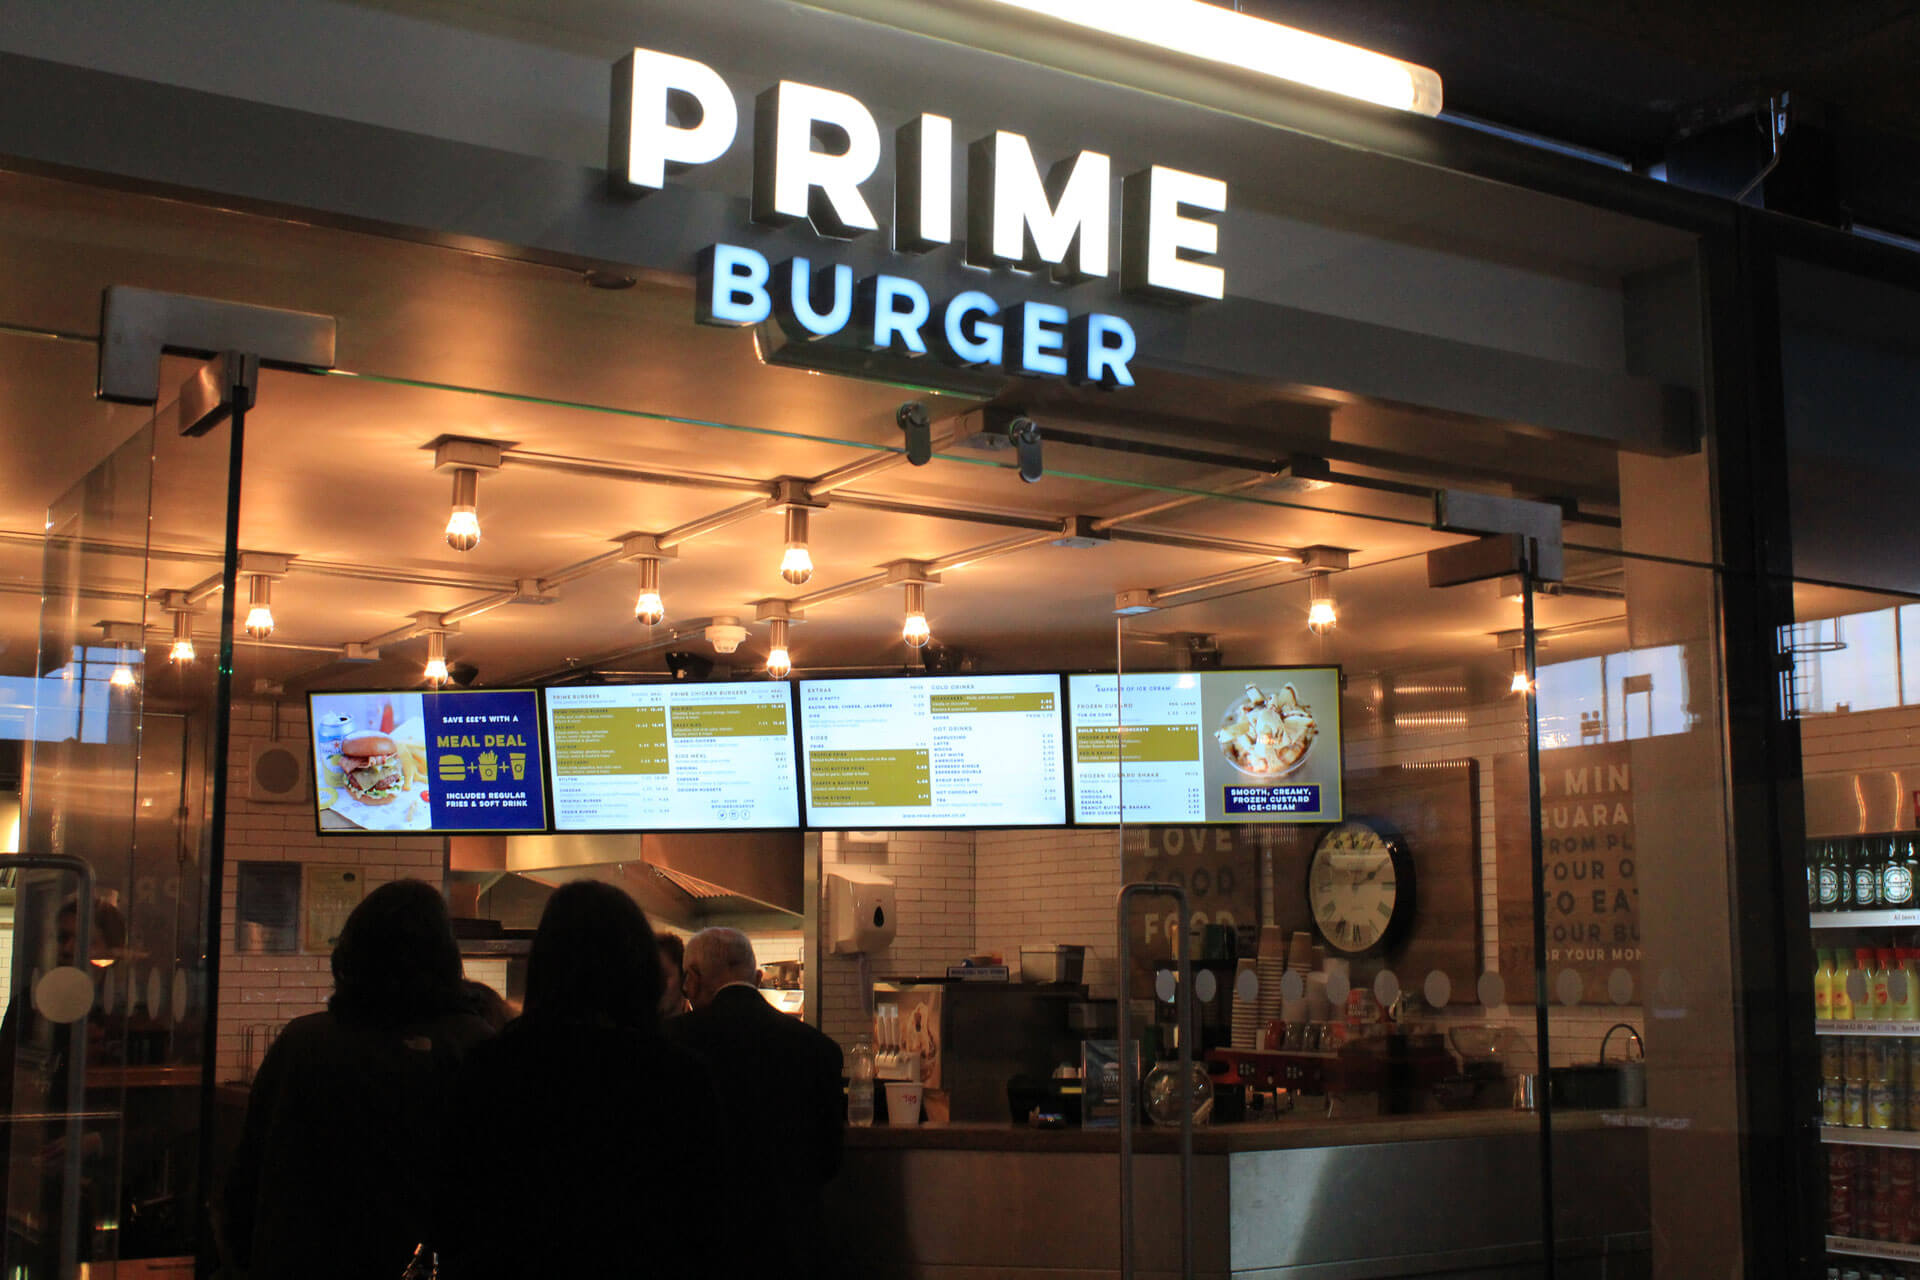 eclipse digital media digital signage solutions restaurant prime burger euston station menuboards